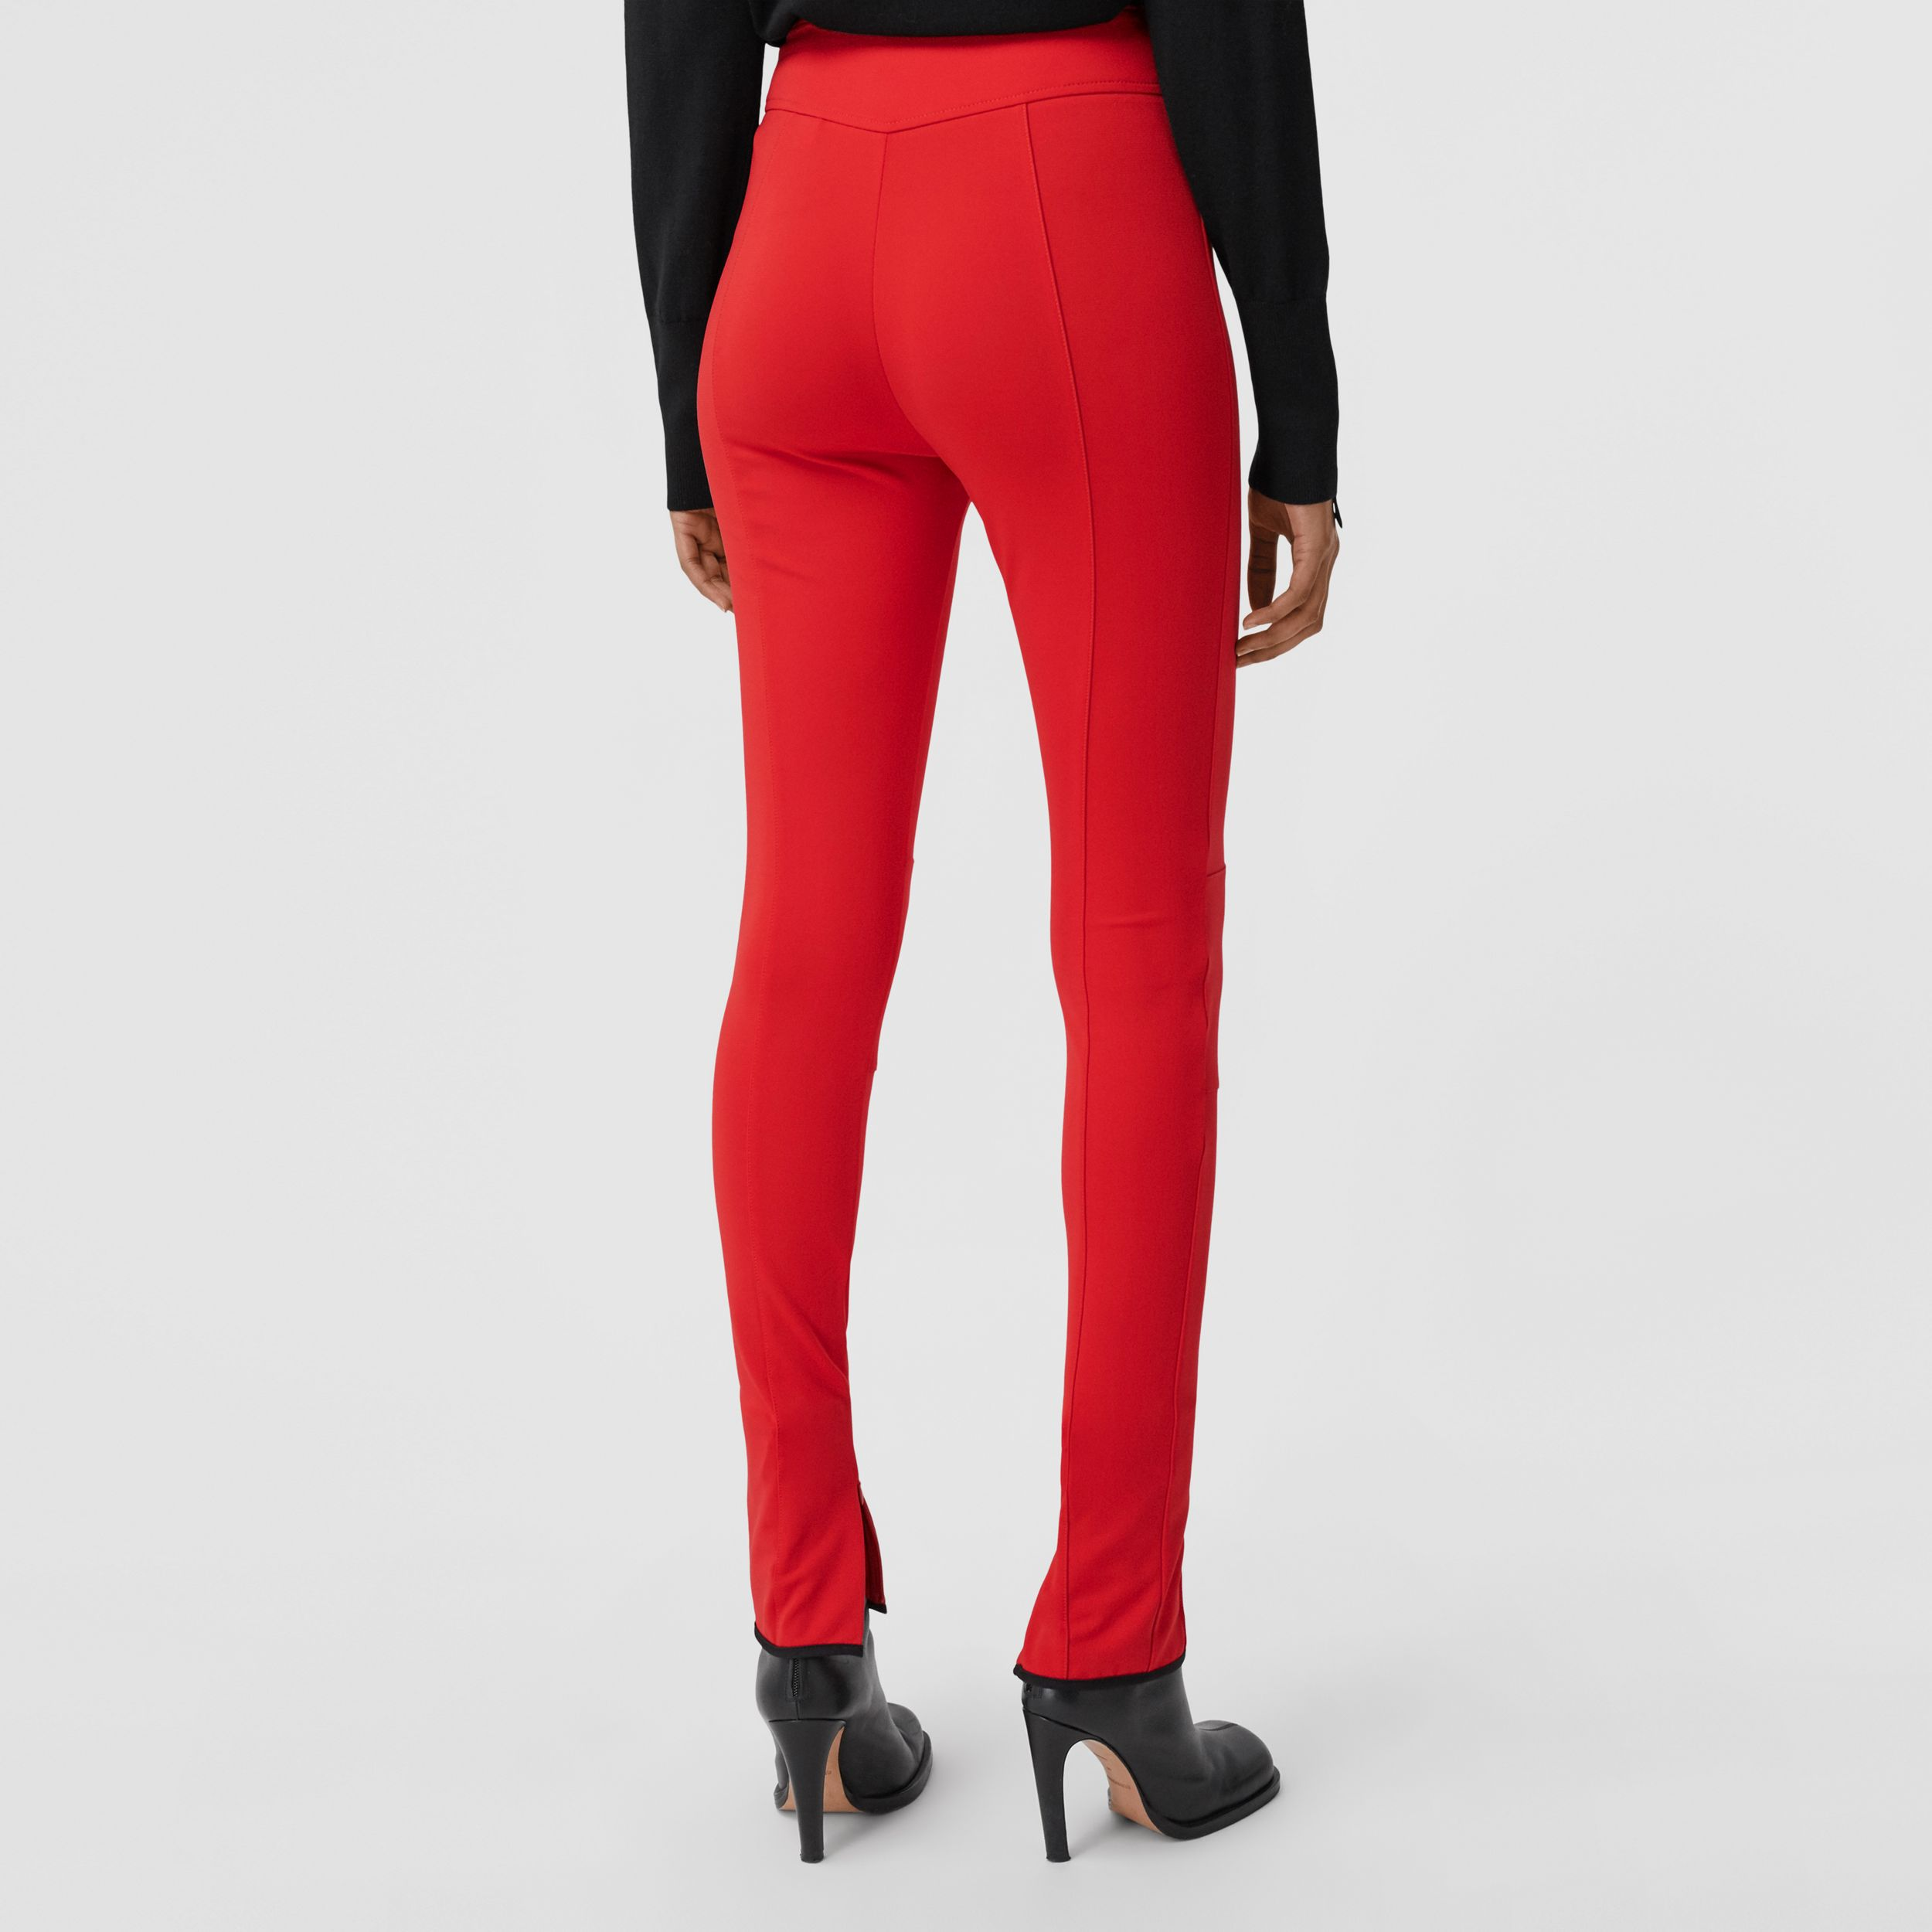 Stretch Crepe Jersey Jodhpurs in Bright Red - Women | Burberry - 3